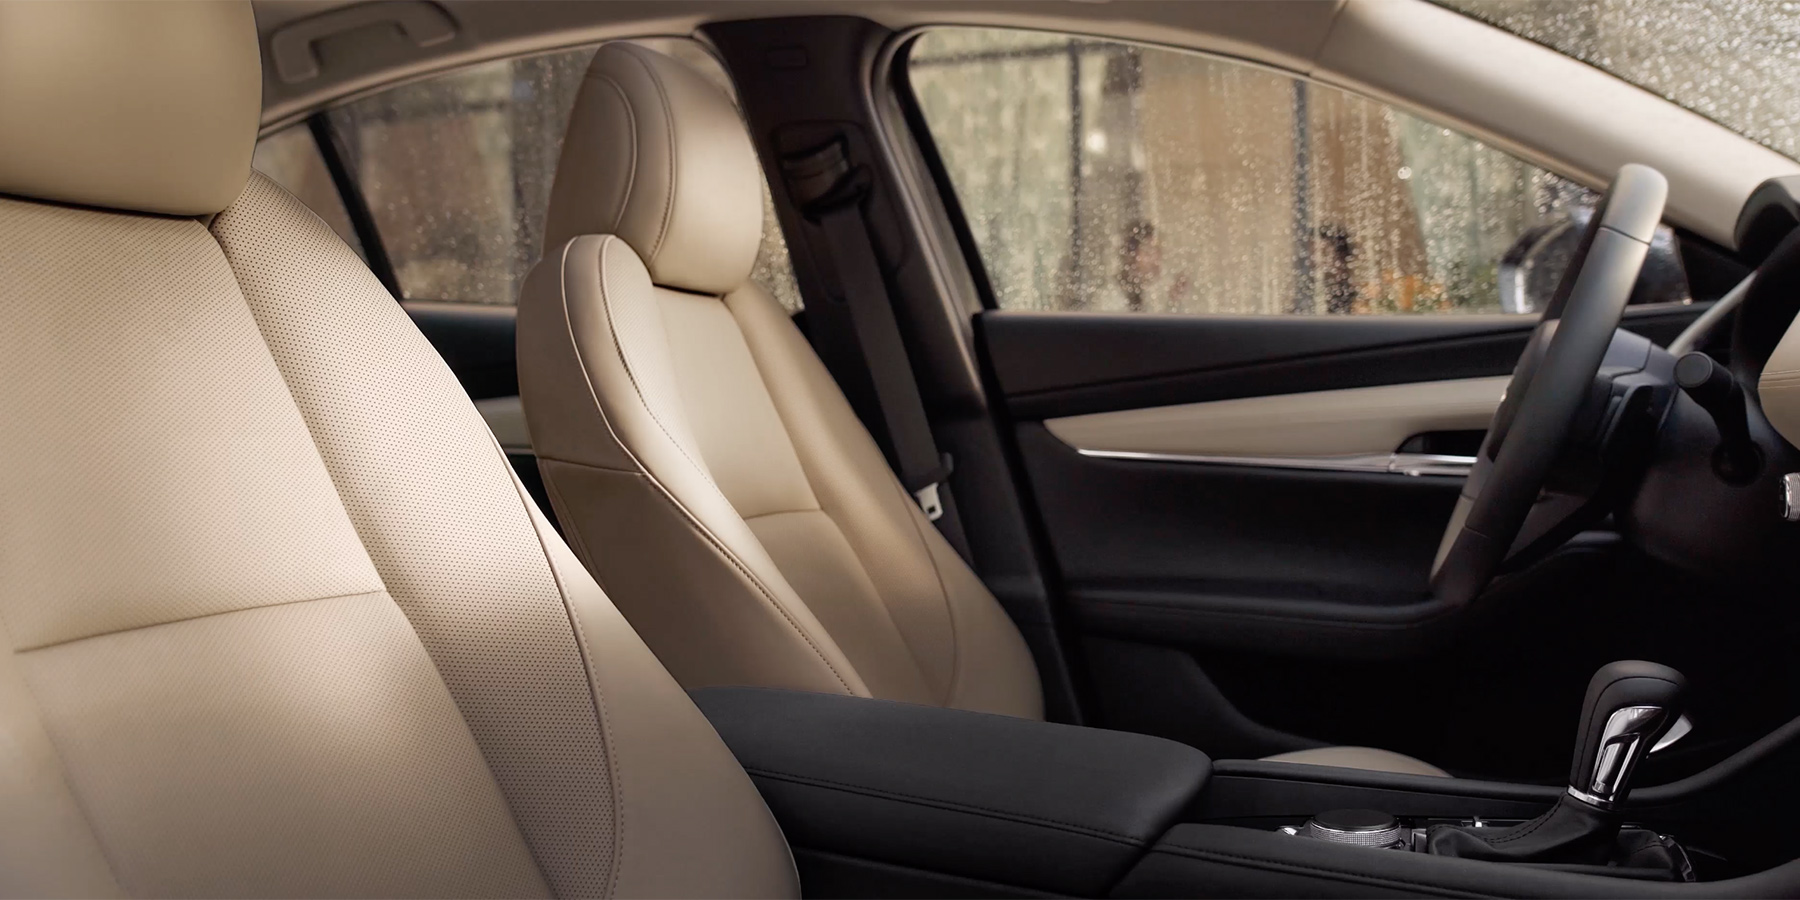 Cozy Seats in the 2020 Mazda3 Sedan